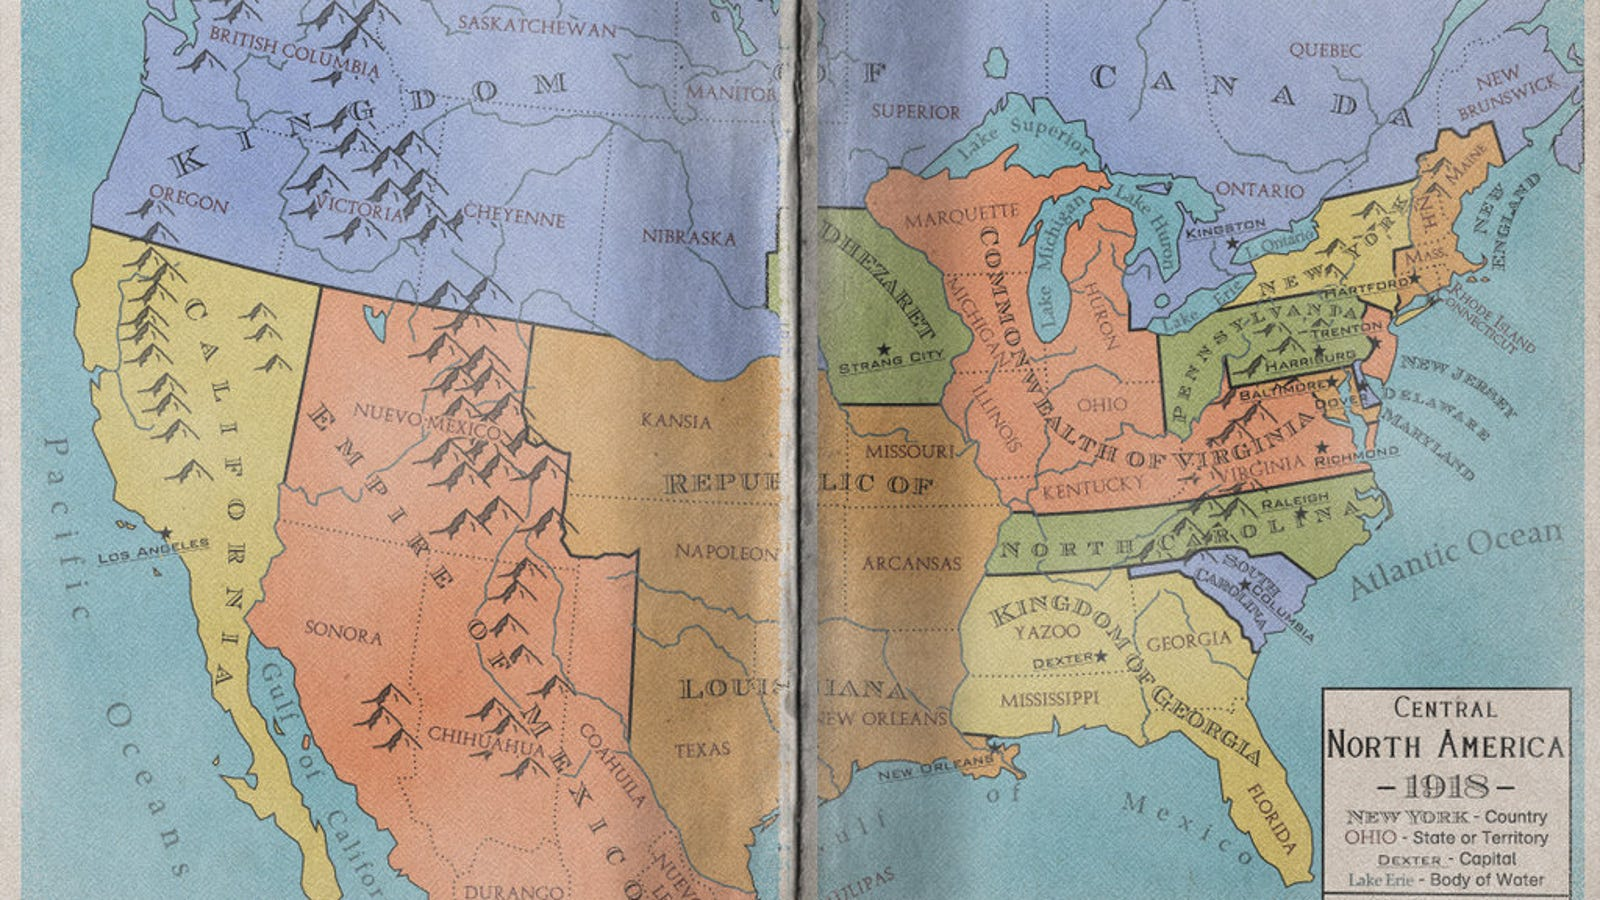 Alternate United States Map.Maps Of An Alternate North America That Never Became The United States